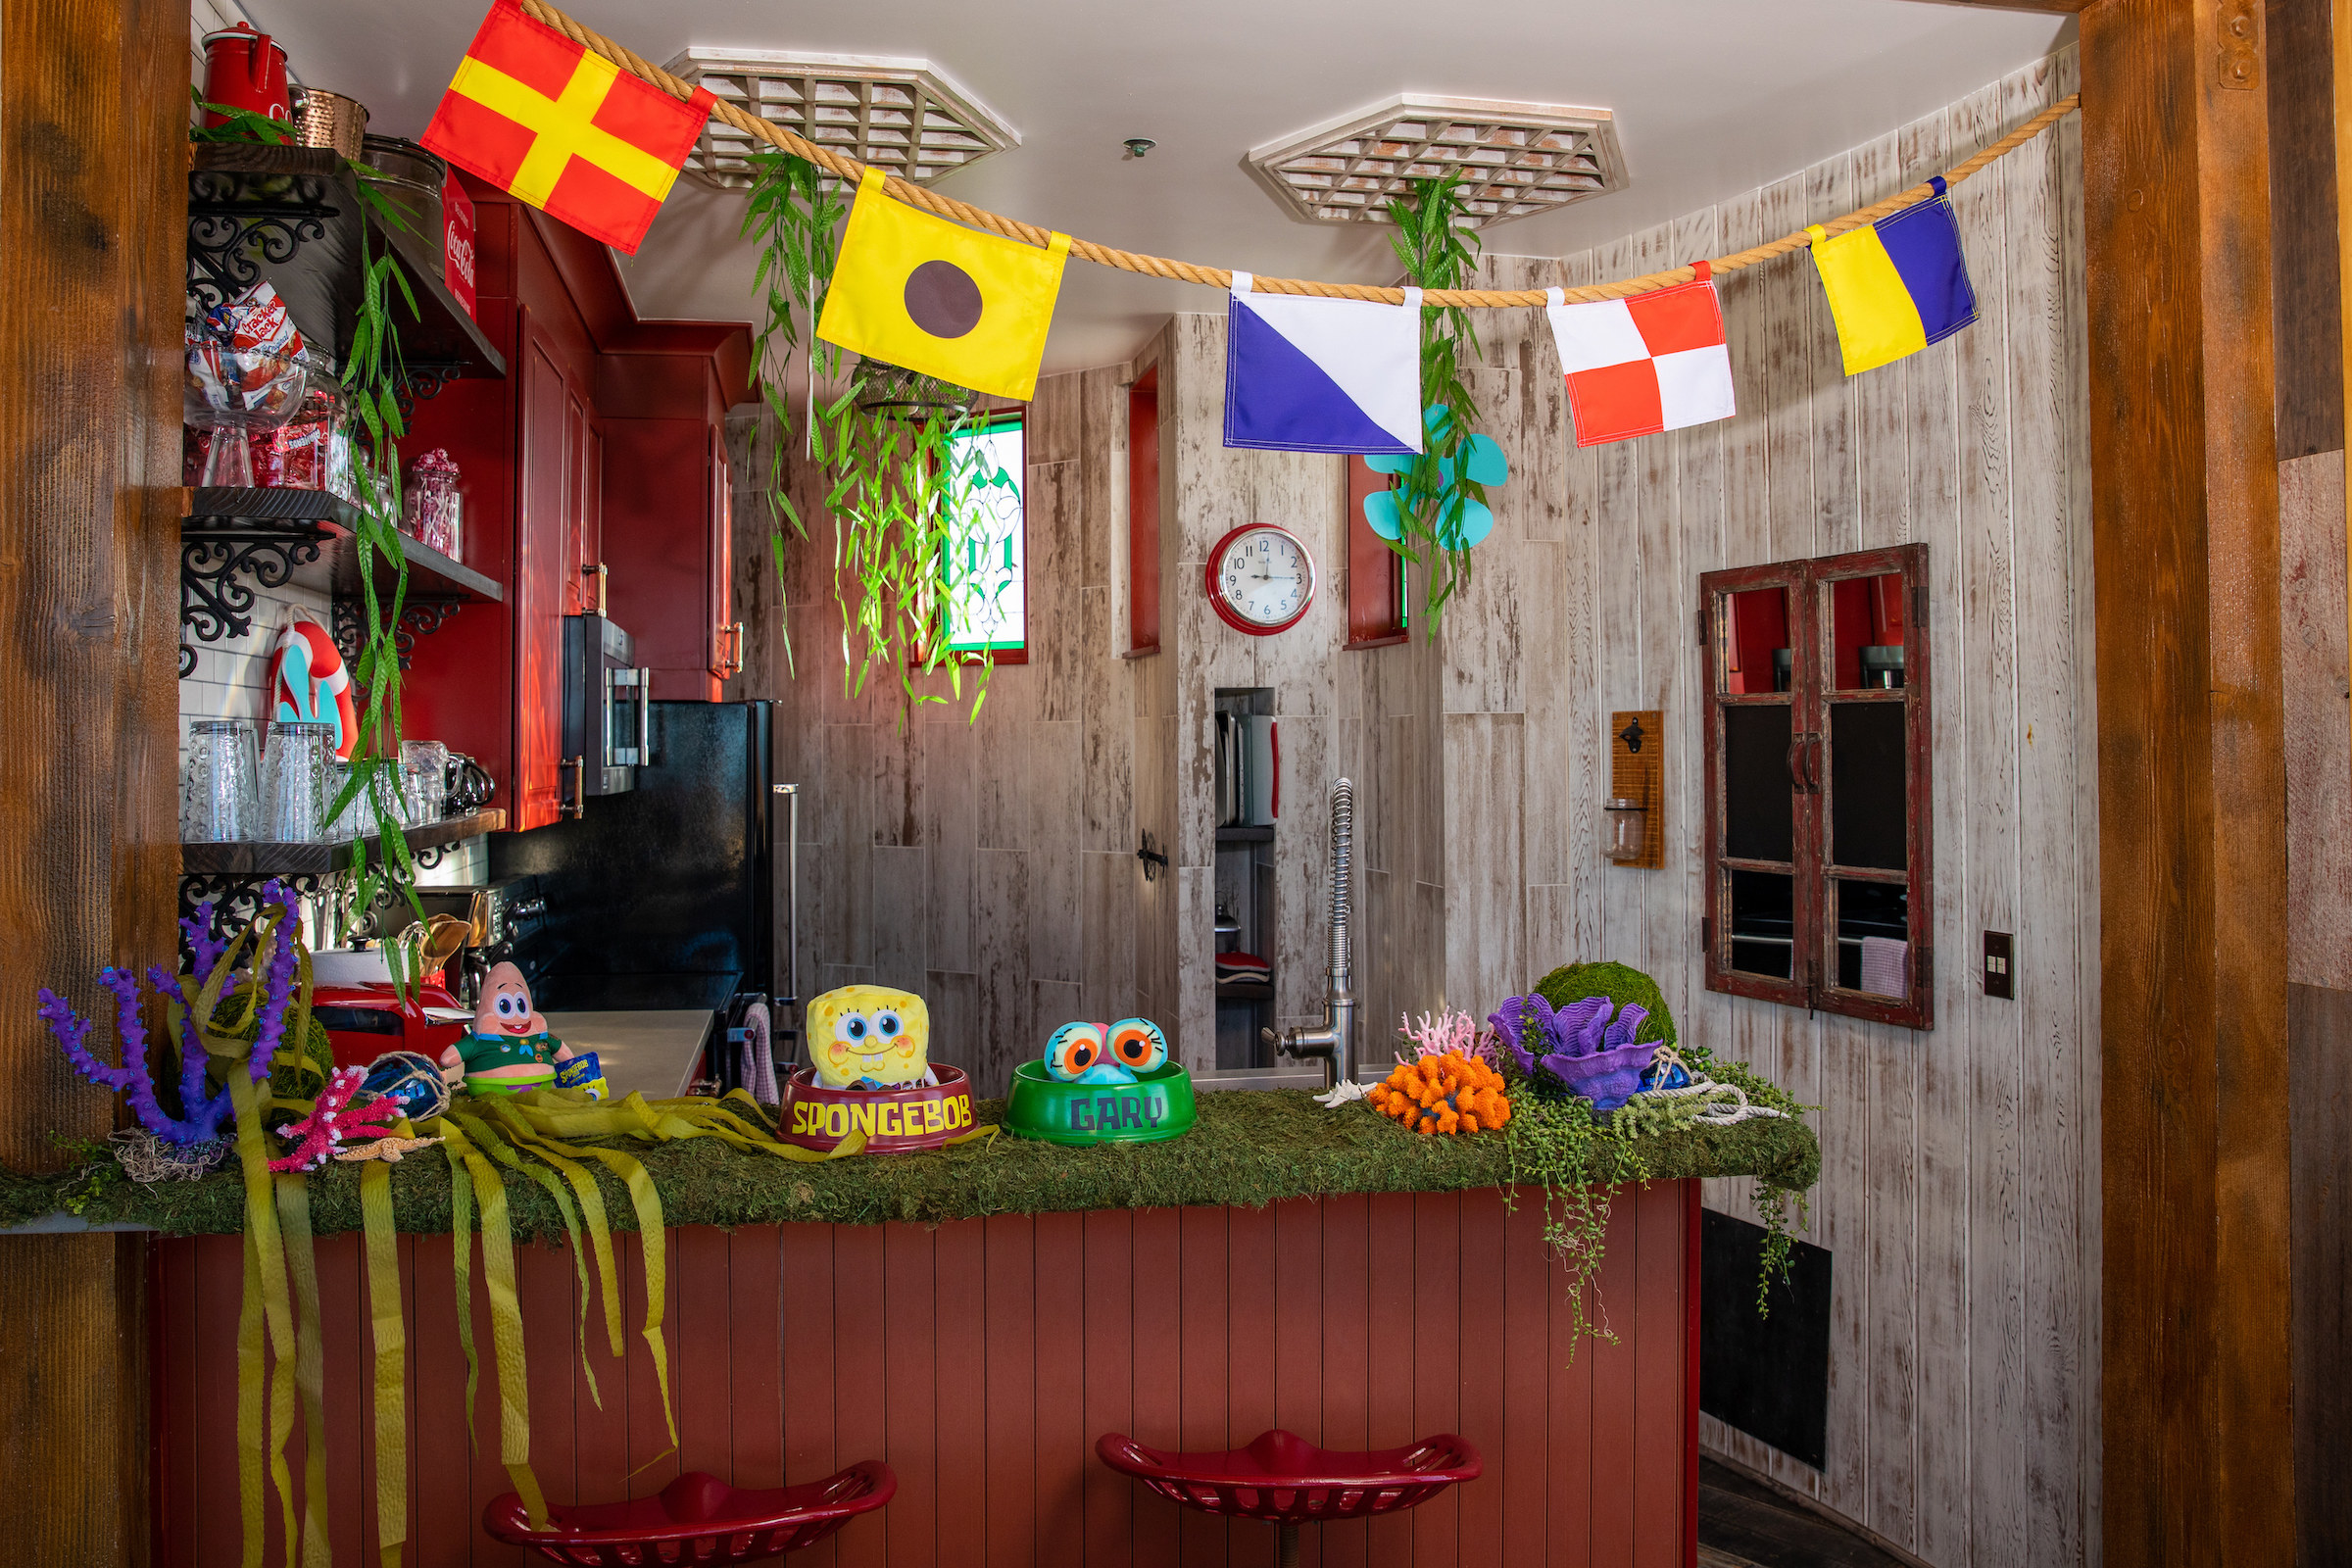 The kitchen which features nautical flags as seen at the Krusty Krab